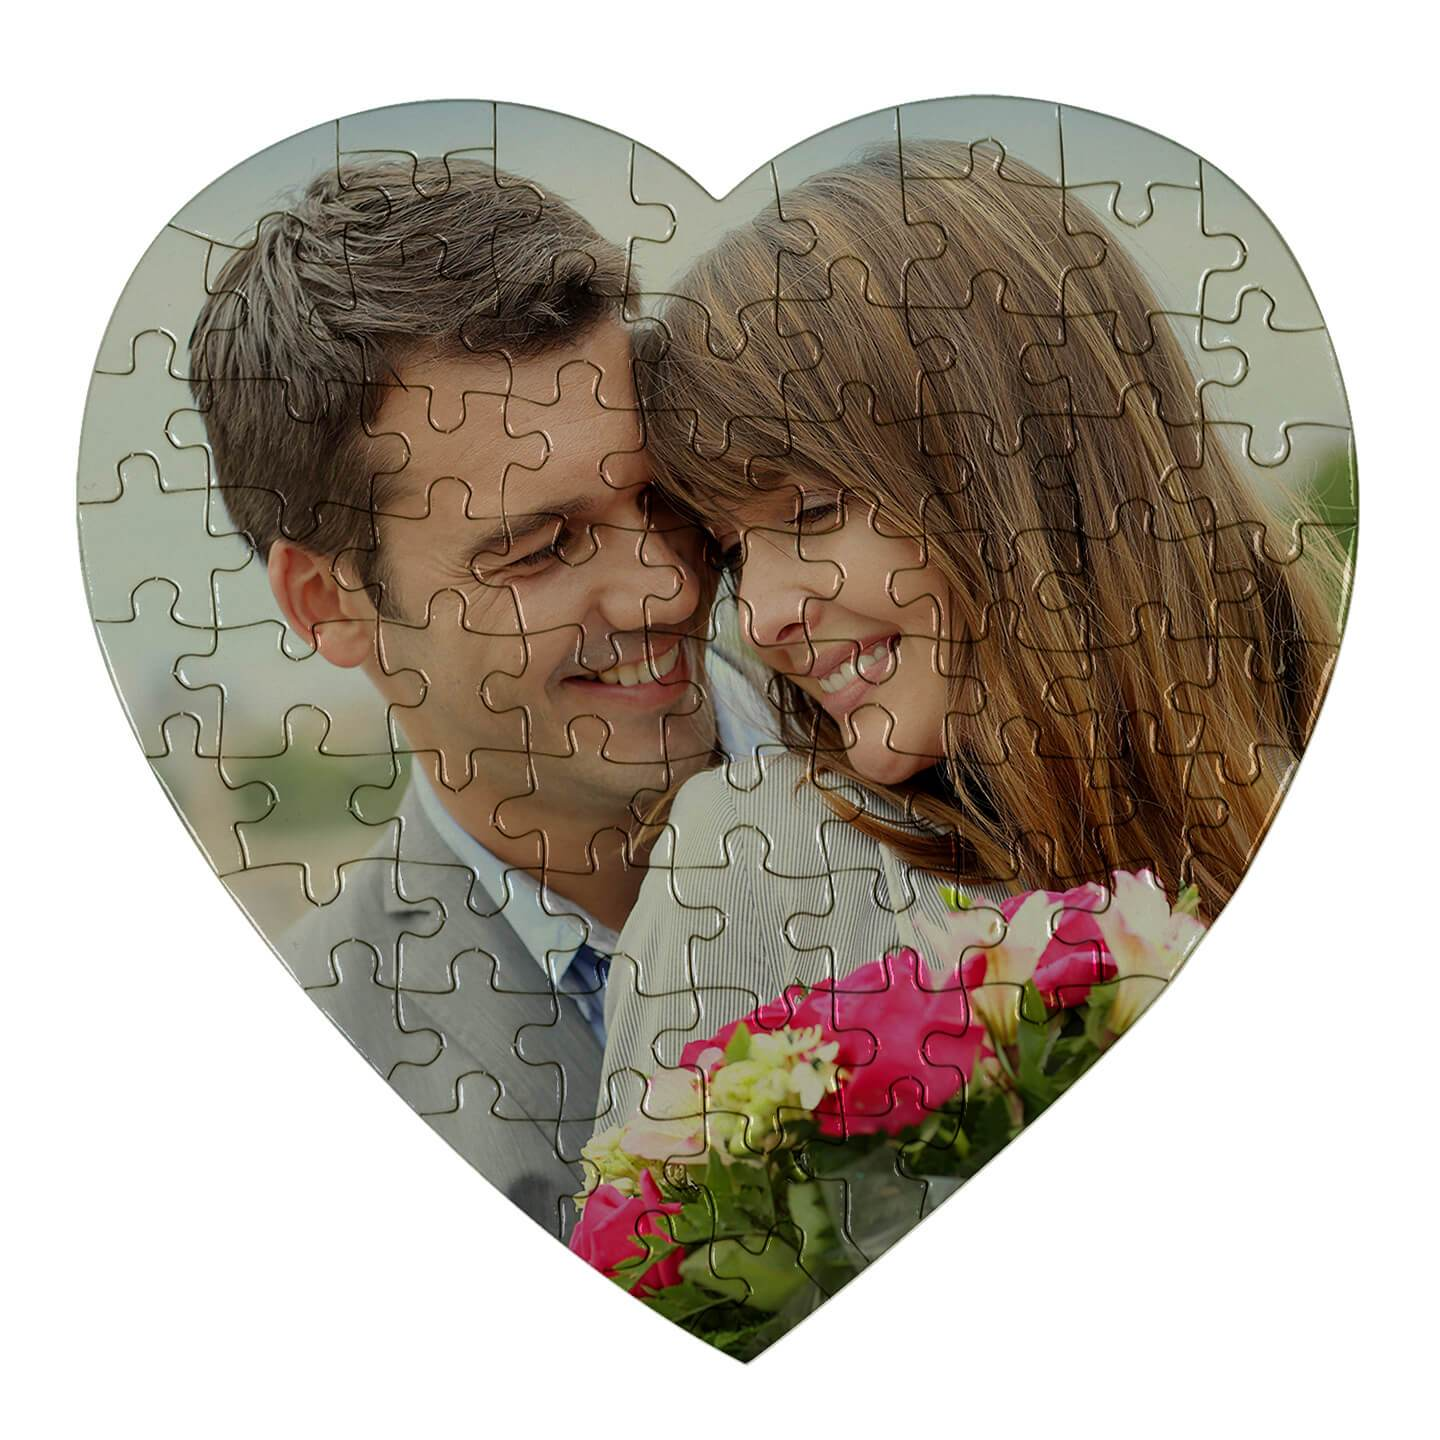 PUZZLE SUBLIMATION HEART JIGSAW